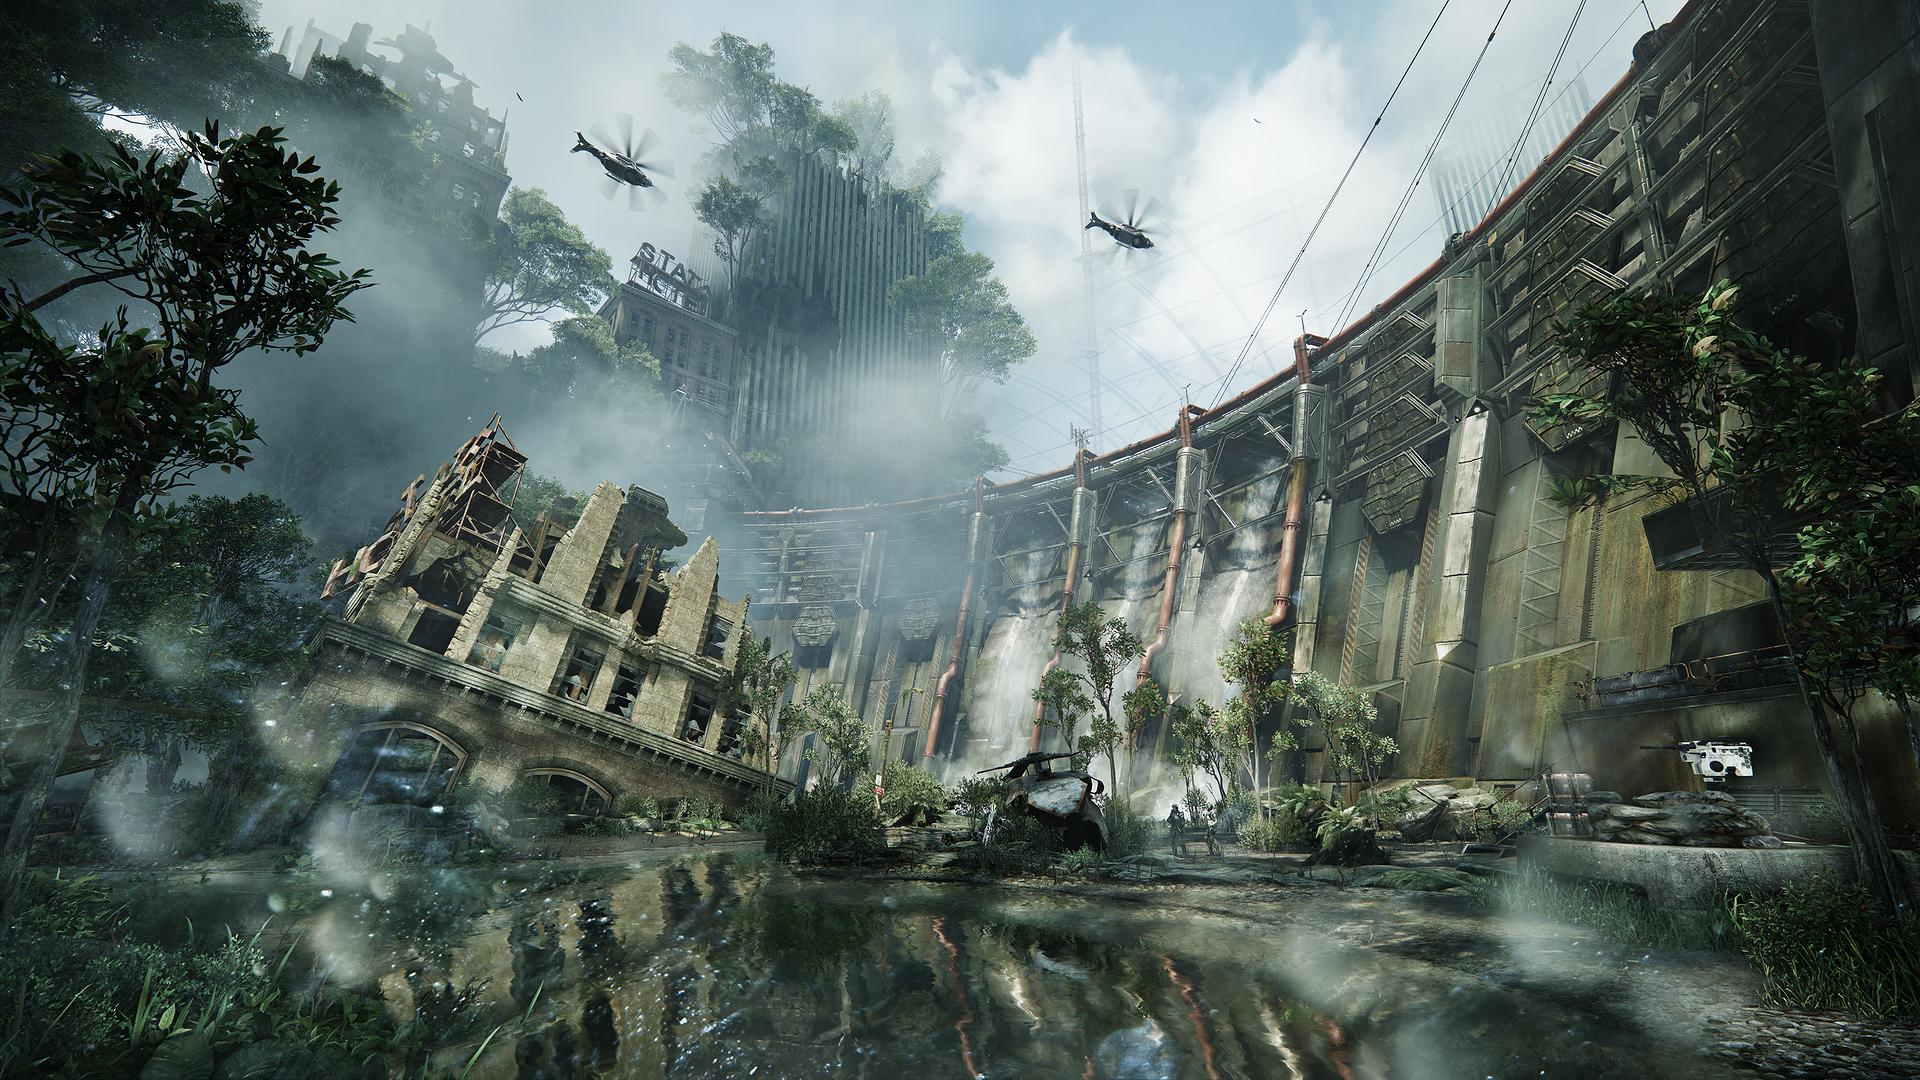 crysis 3 wallpaper hd